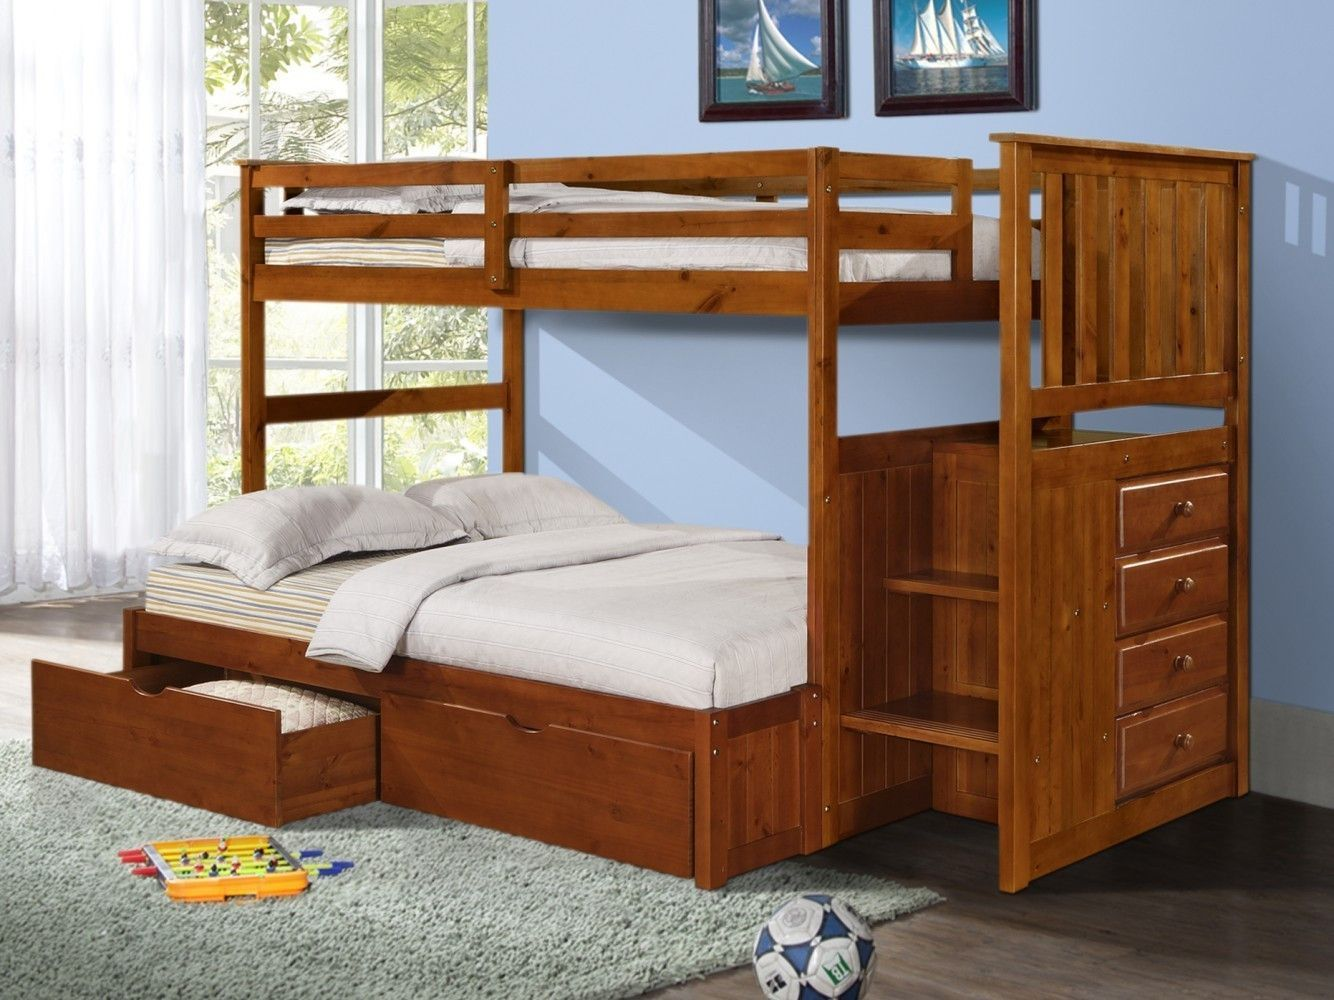 Best Alexander Kids Beds With Storage Custom Kids Furniture 400 x 300